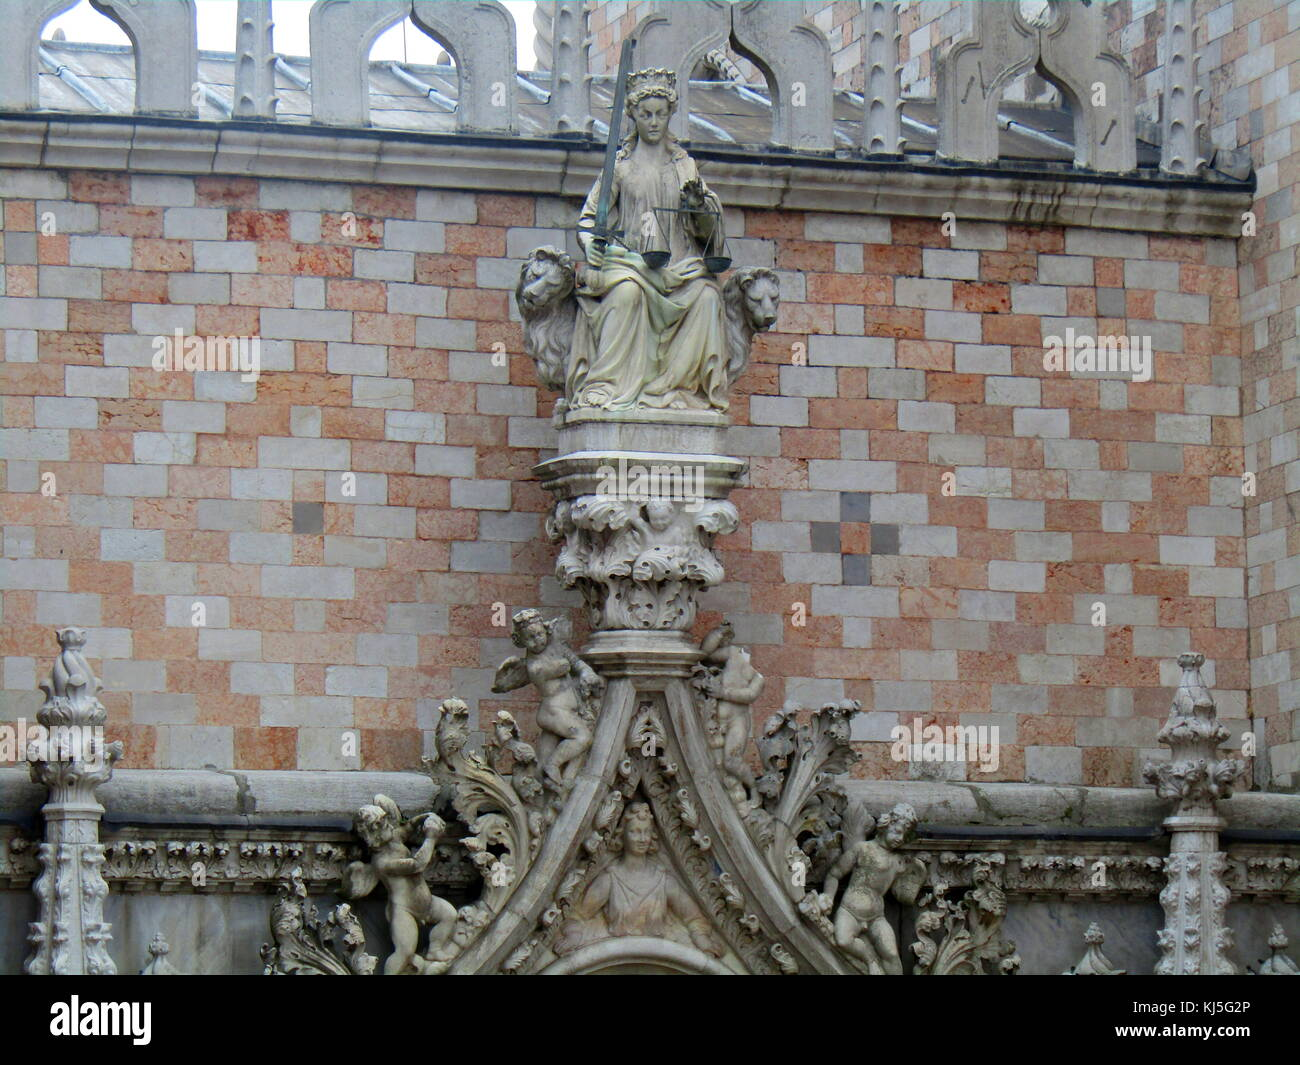 Detail from the façade of the Doge's Palace (Palazzo Ducal) built in Venetian Gothic style, and one of - Stock Image